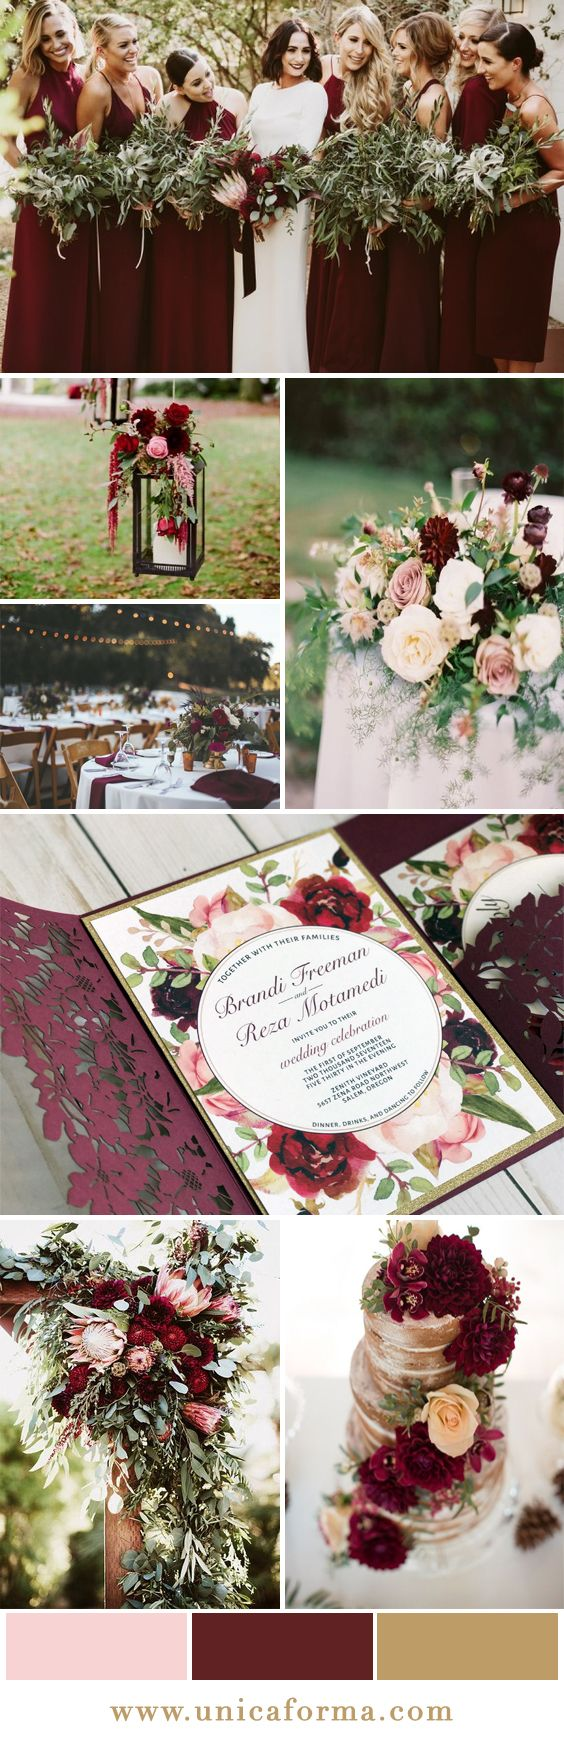 Wedding decorations colours december 2018 Marsala blush and gold colour palette  maroon  Pinterest  Gold